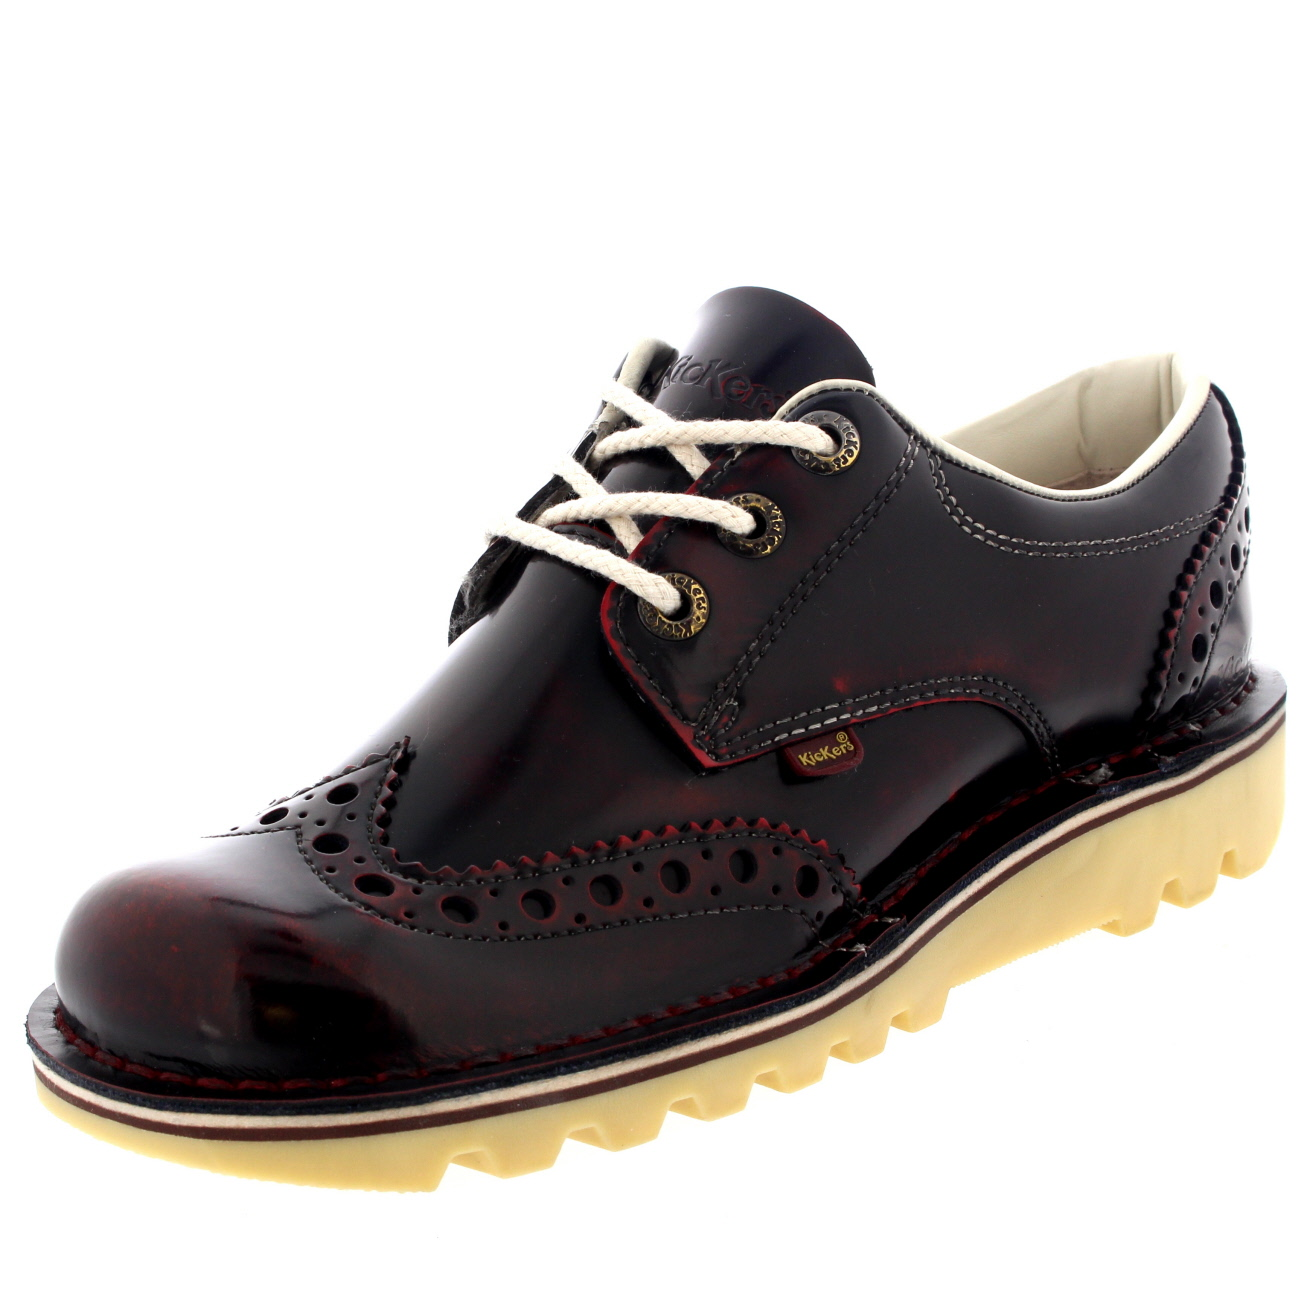 Mens Kickers Legendry Suede Lace Up Ankle High Work Office Smart